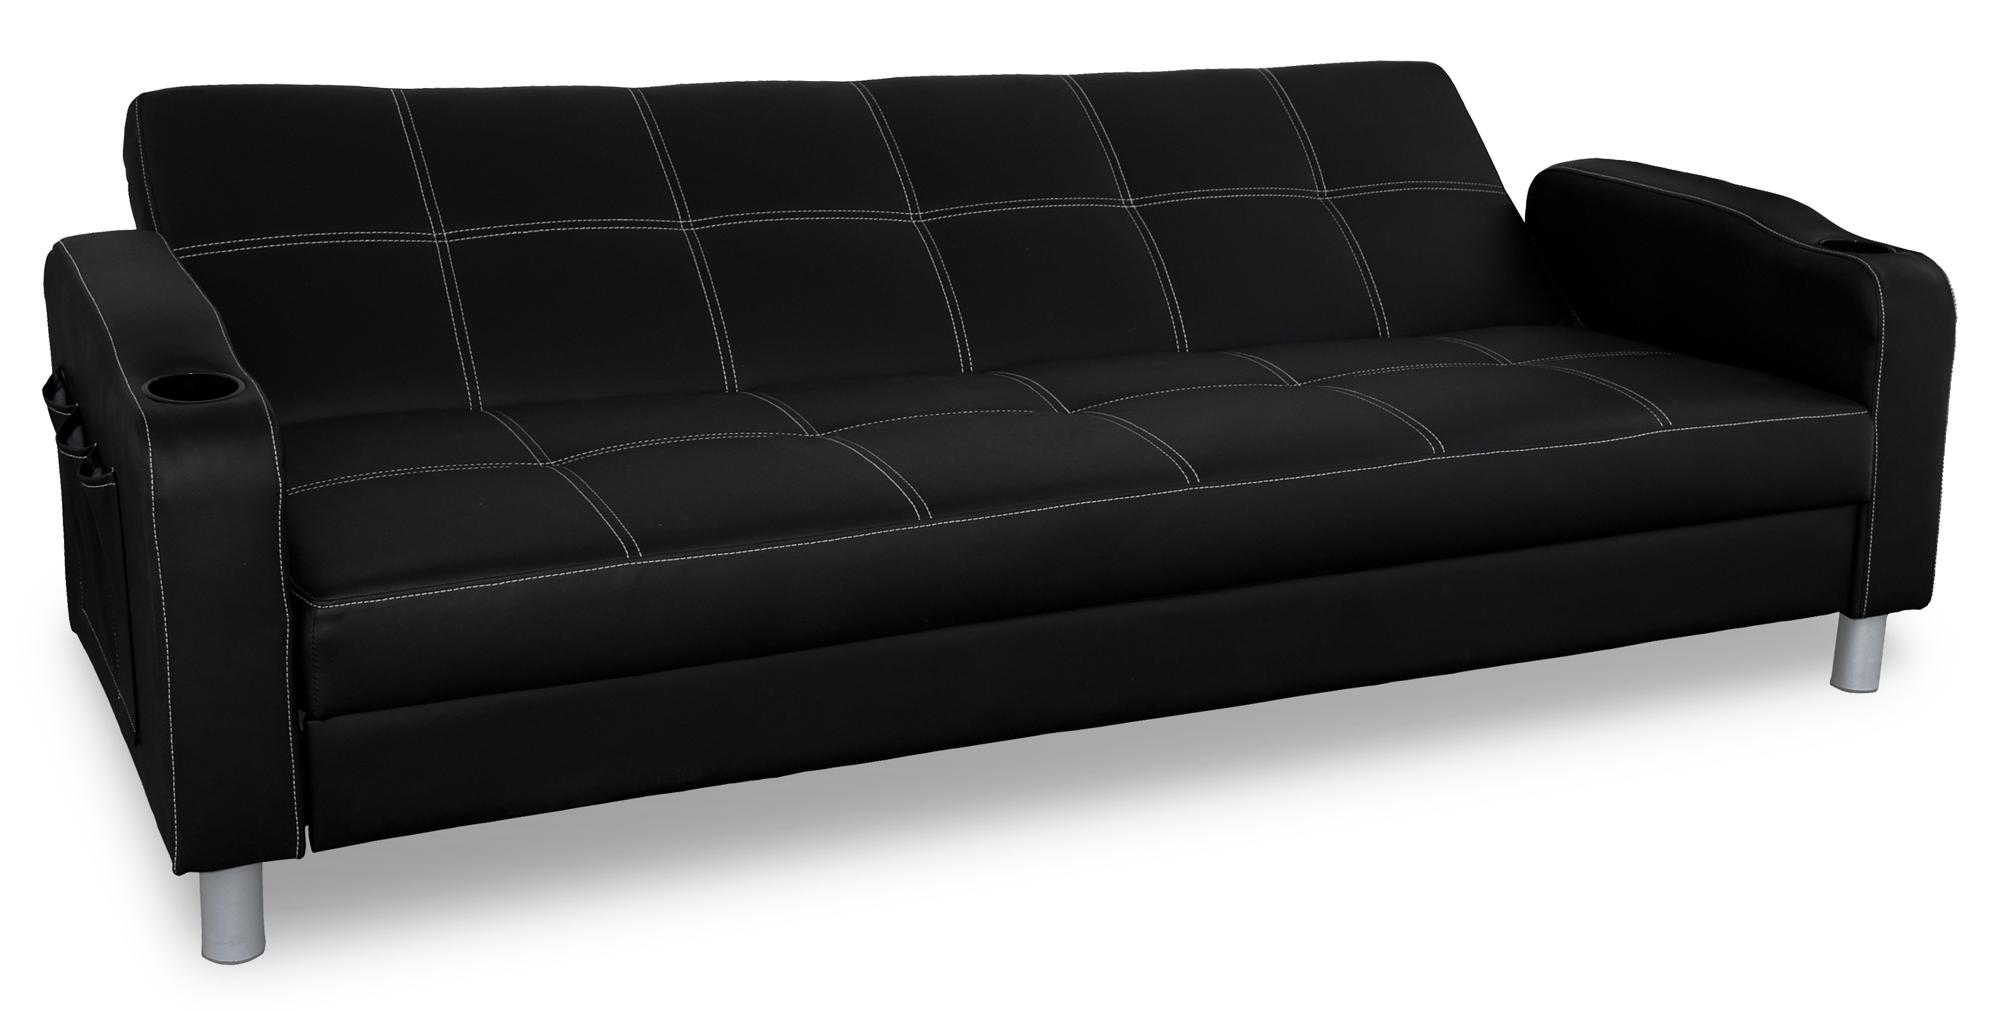 bianca futon sofa bed review recling unique 30 serta sleeper sectional sofas